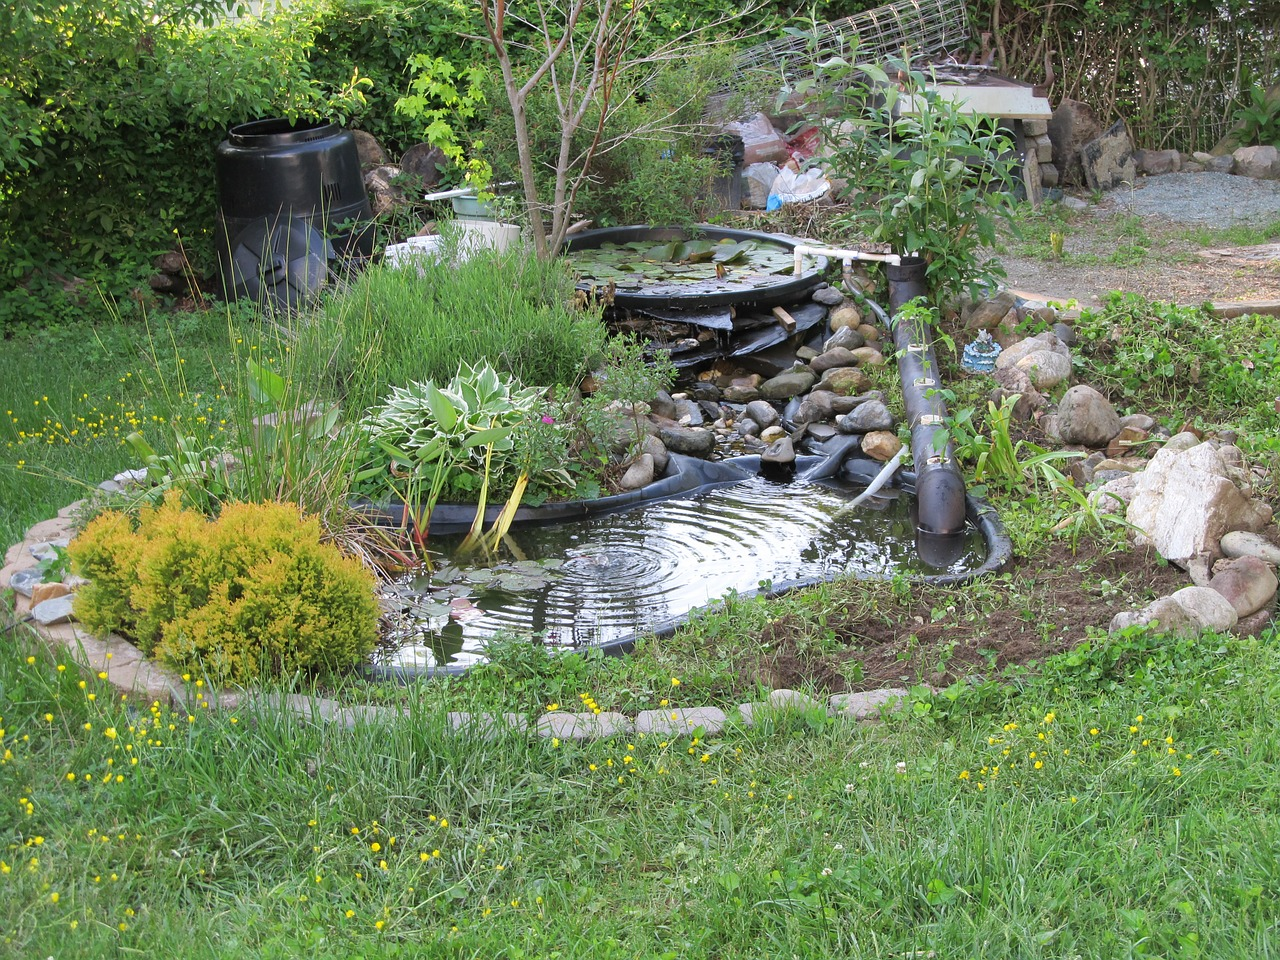 Turn Your Backyard Into A Fish Farm Raise Tilapia At